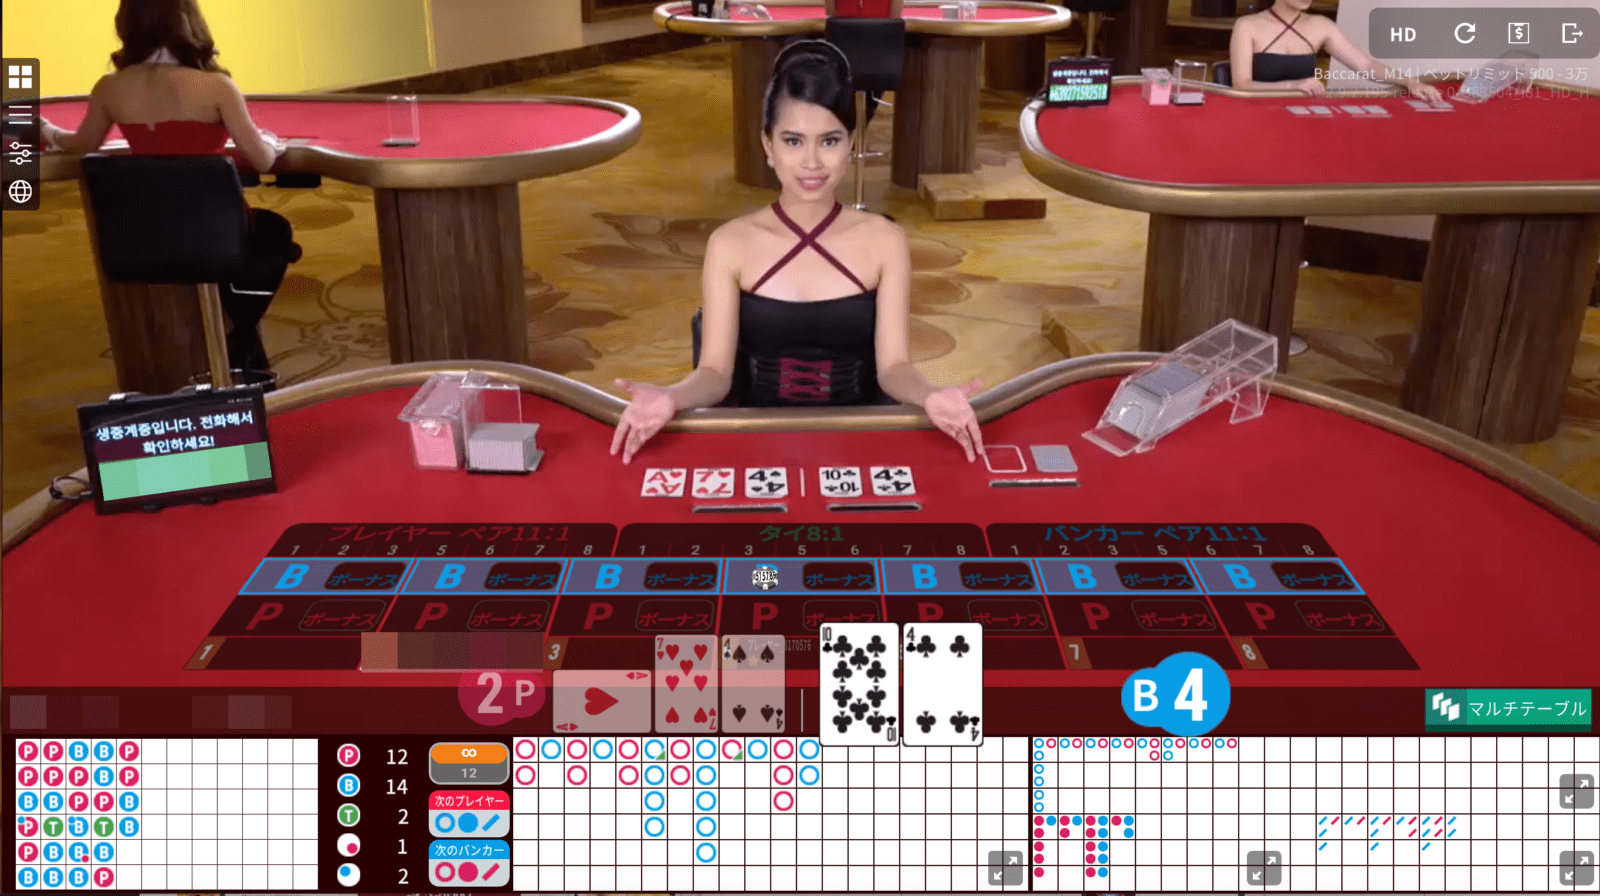 microgaming_table